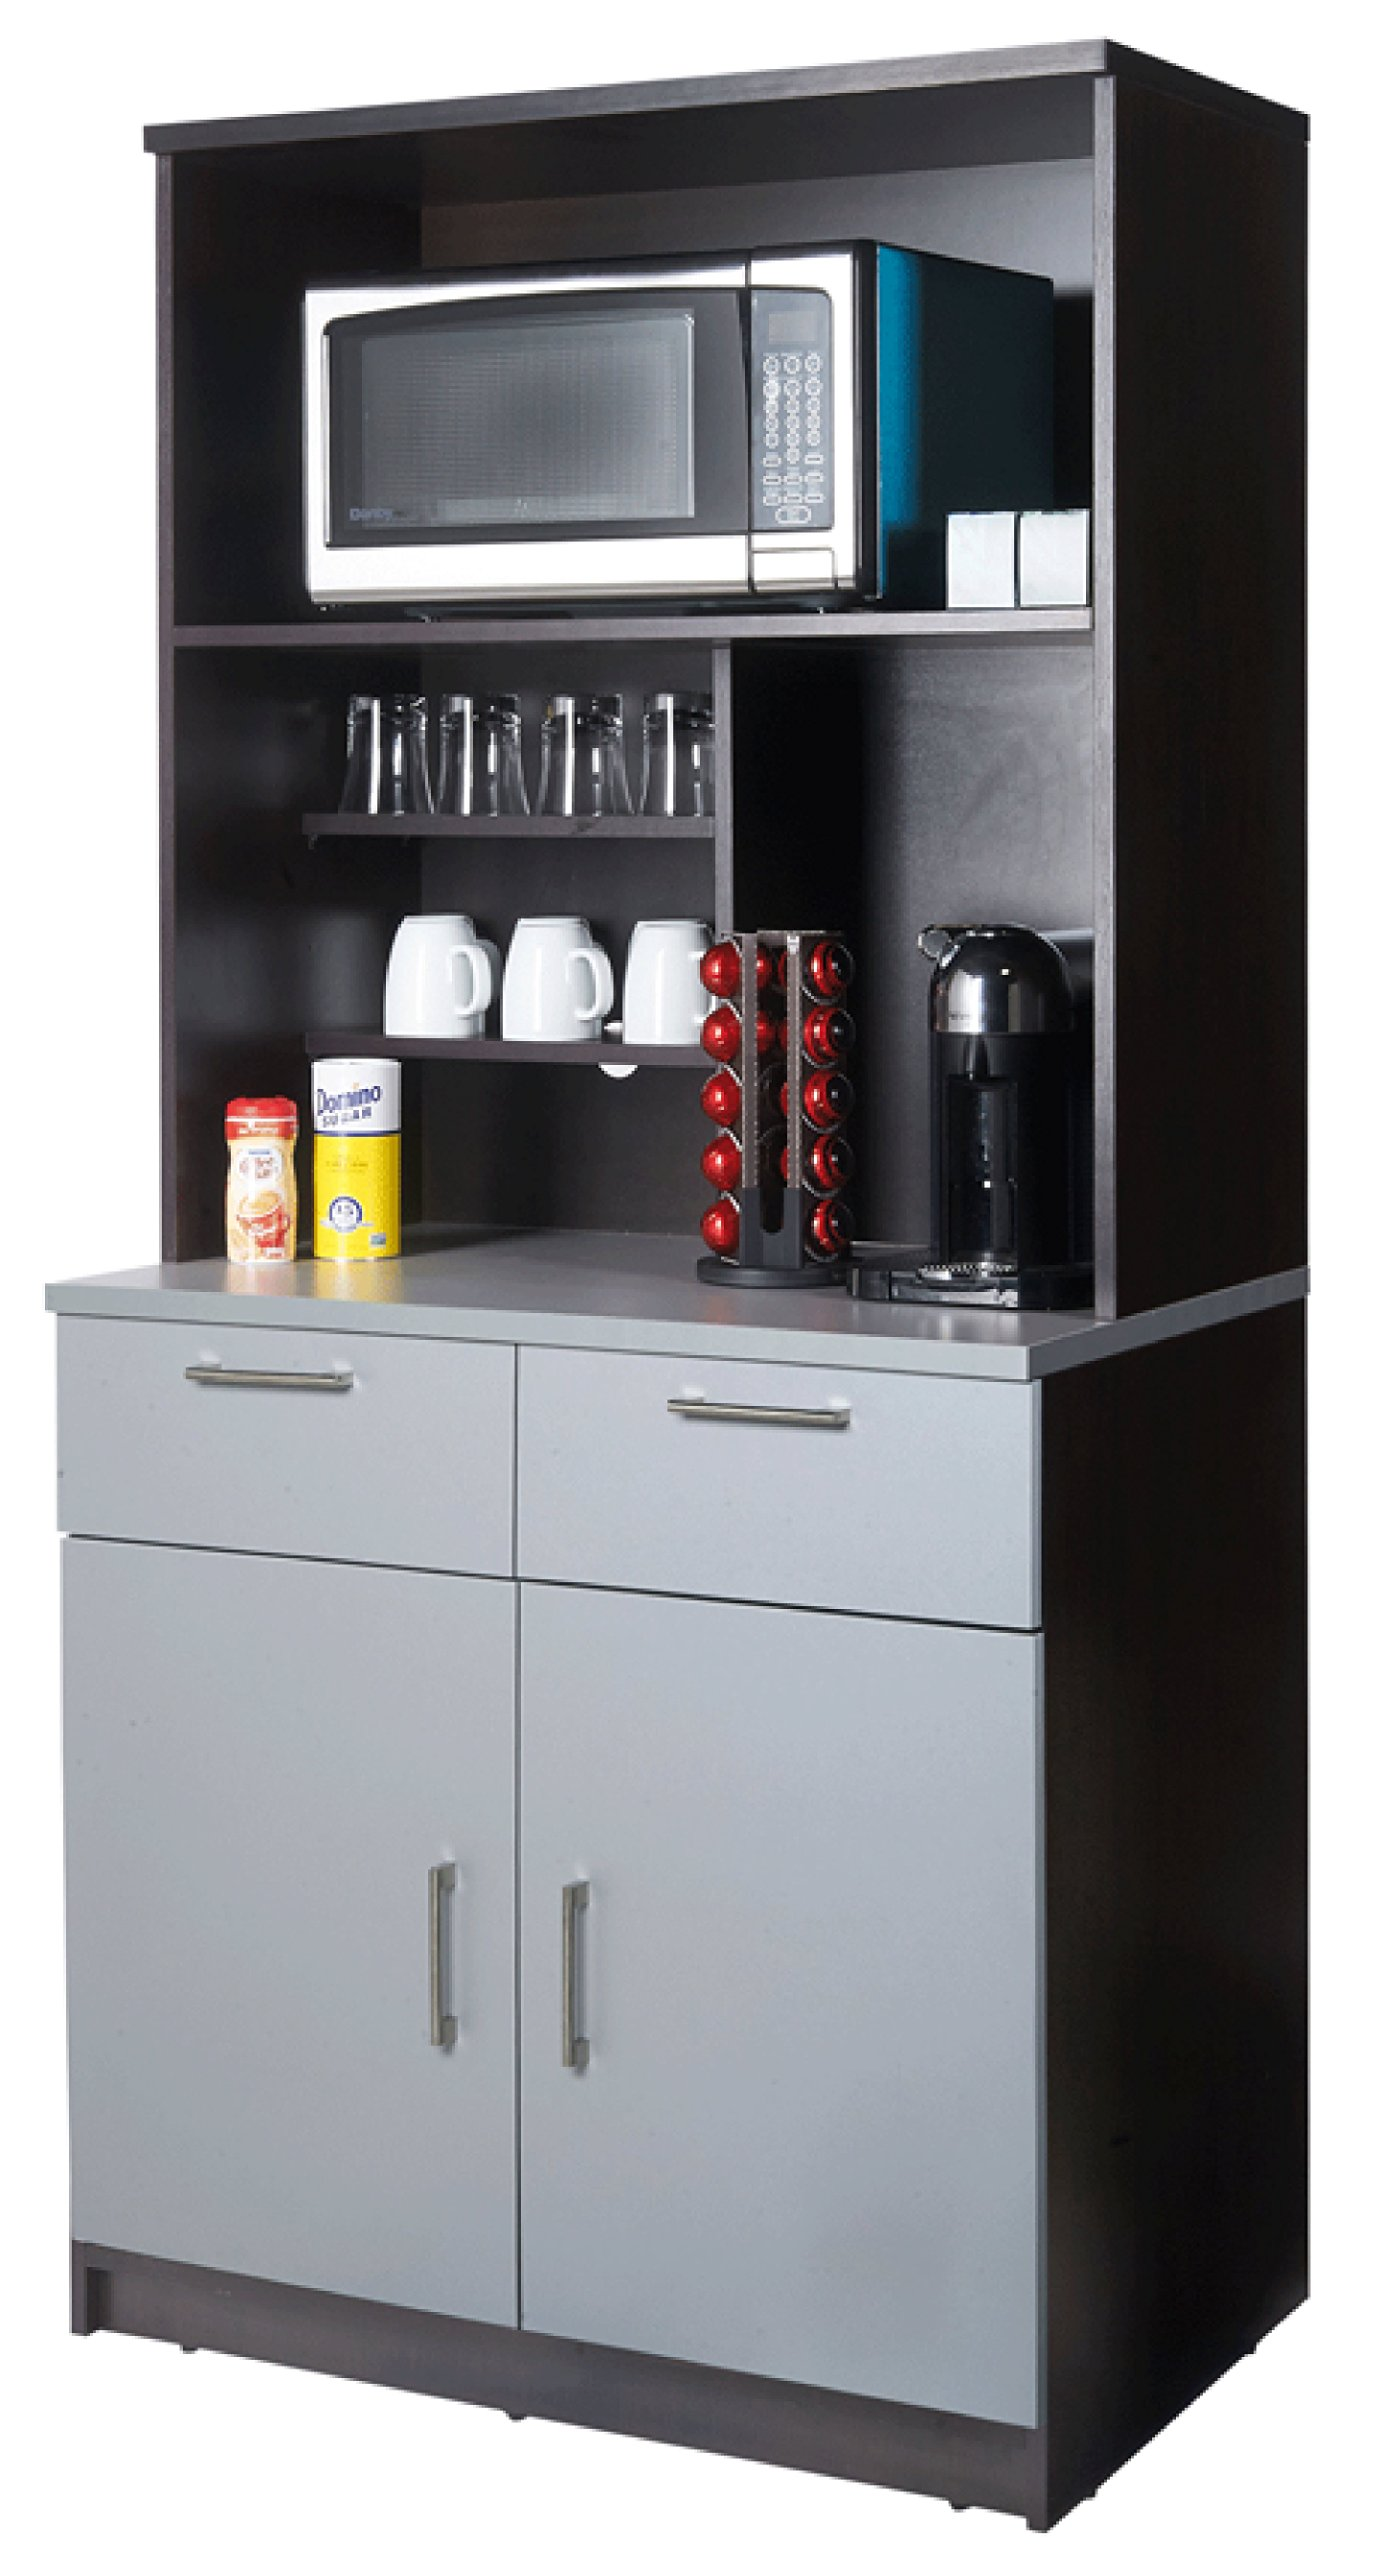 Coffee Kitchen Lunch Break Room Cabinets Model 4231 BREAKTIME 2 Piece Group Color Espresso/Silver Metalic - Factory Assembled (NOT RTA) Furniture Items ONLY. by Breaktime (Image #1)